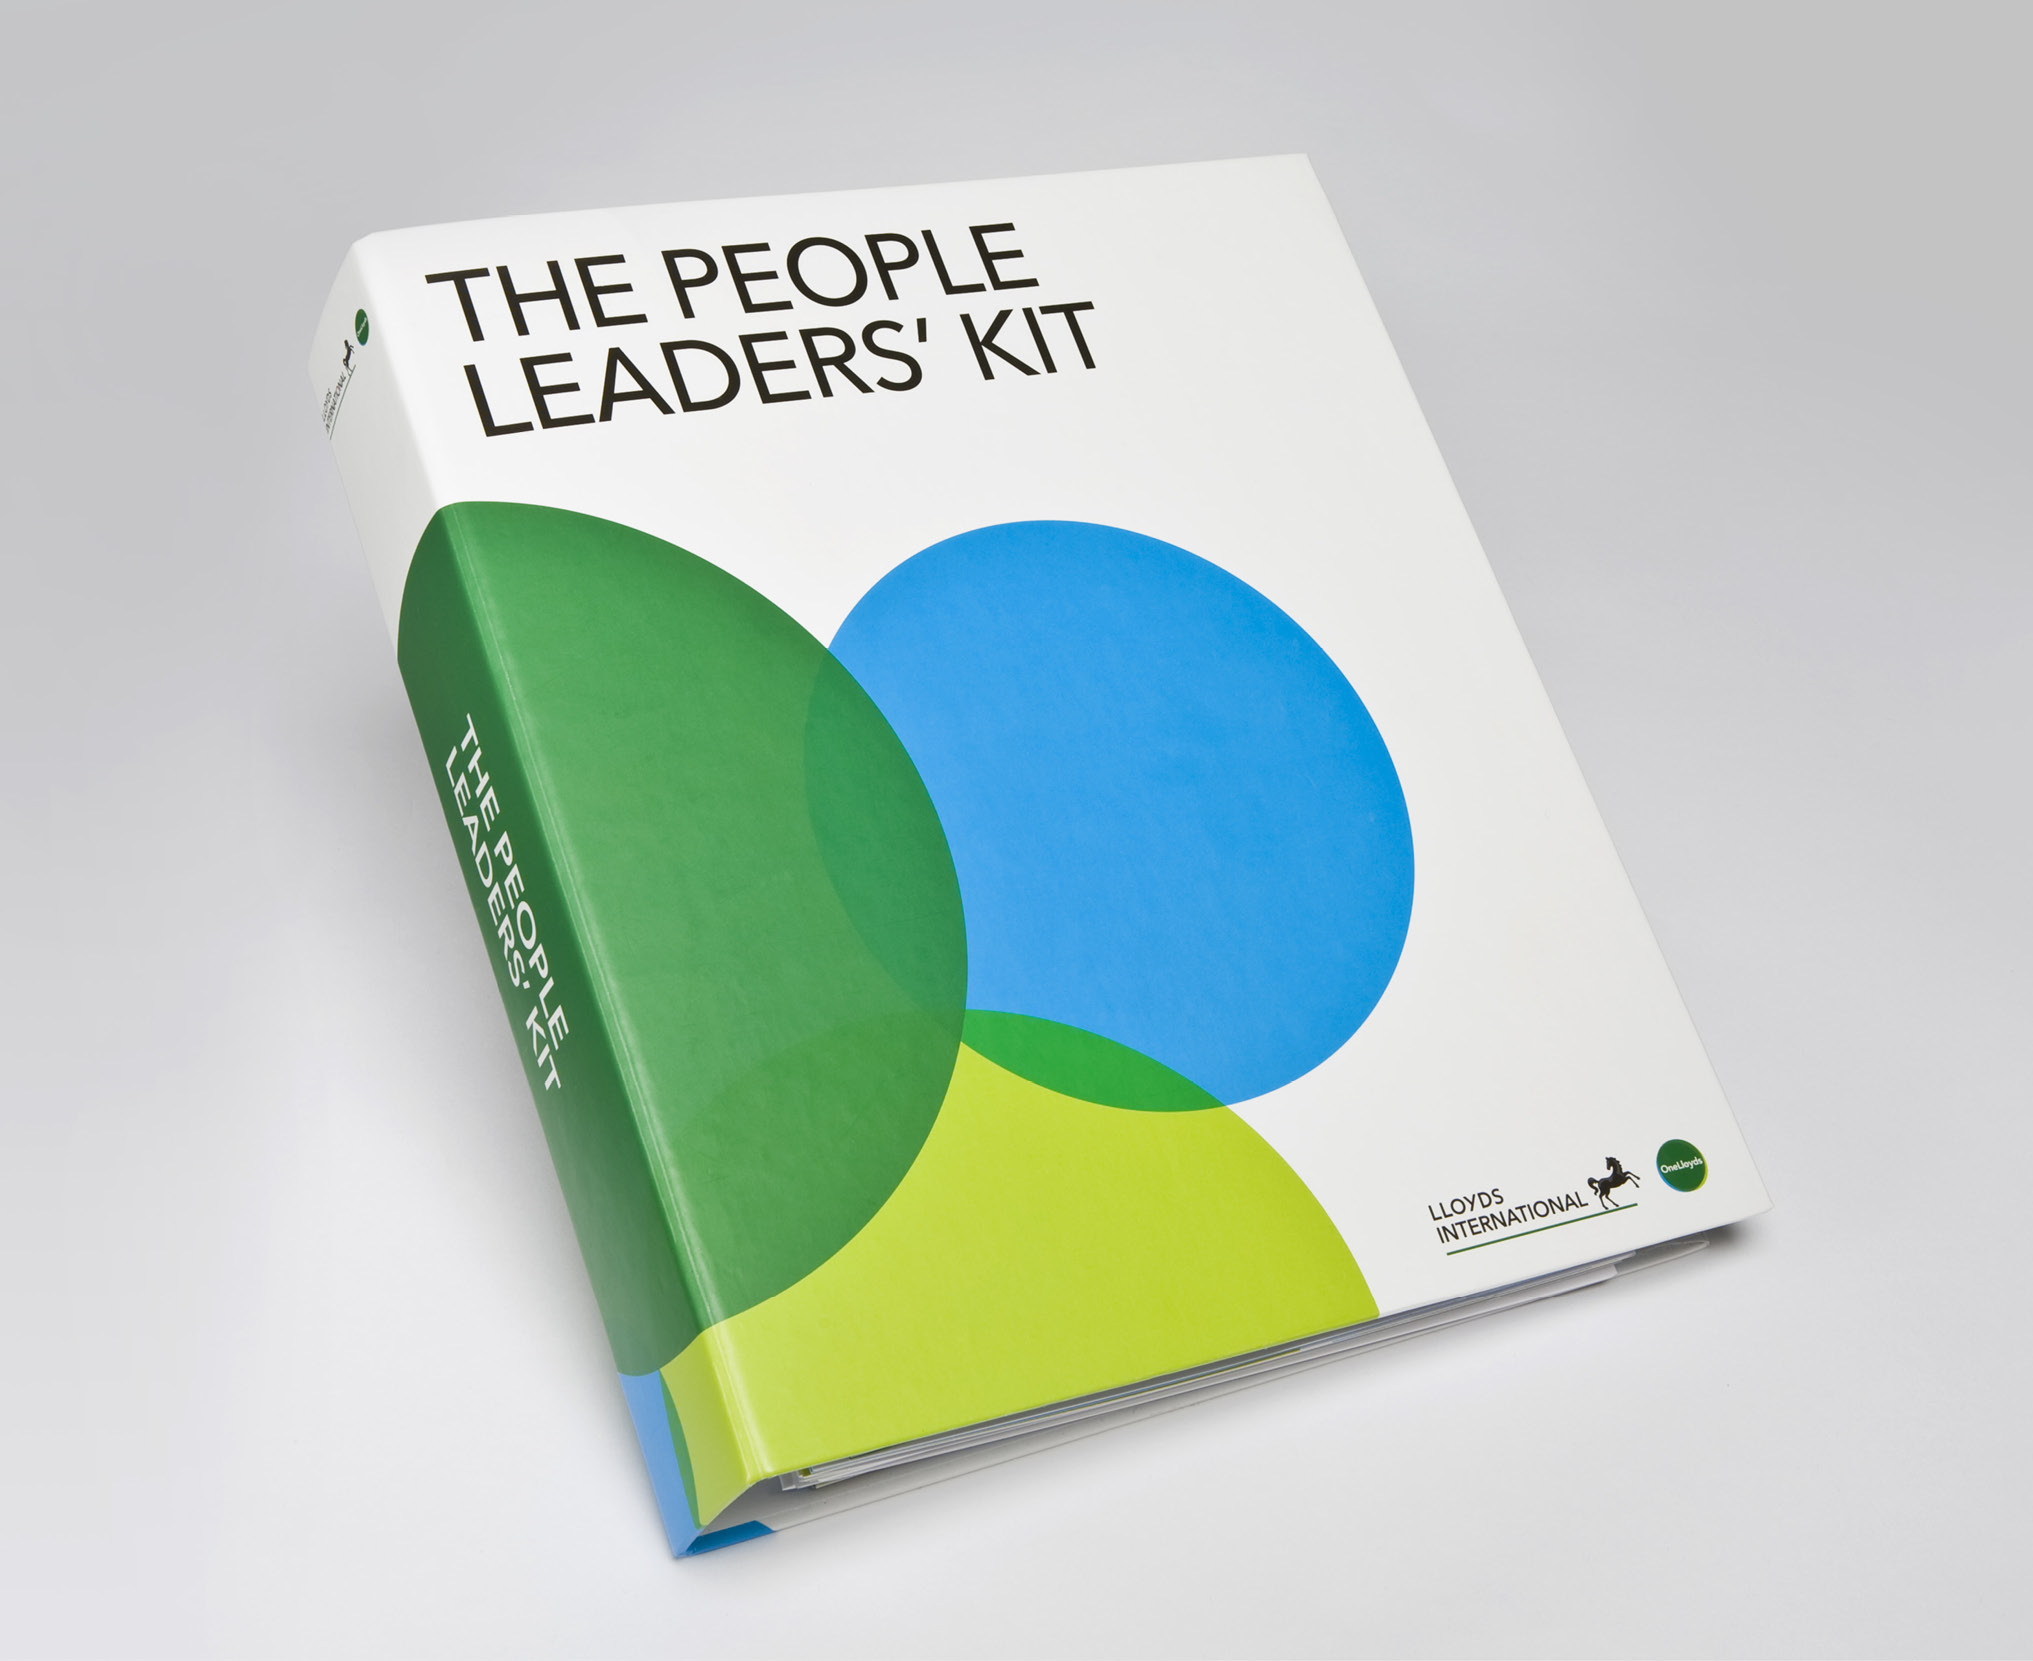 One Lloyds The People Leaders Kit A4 binder